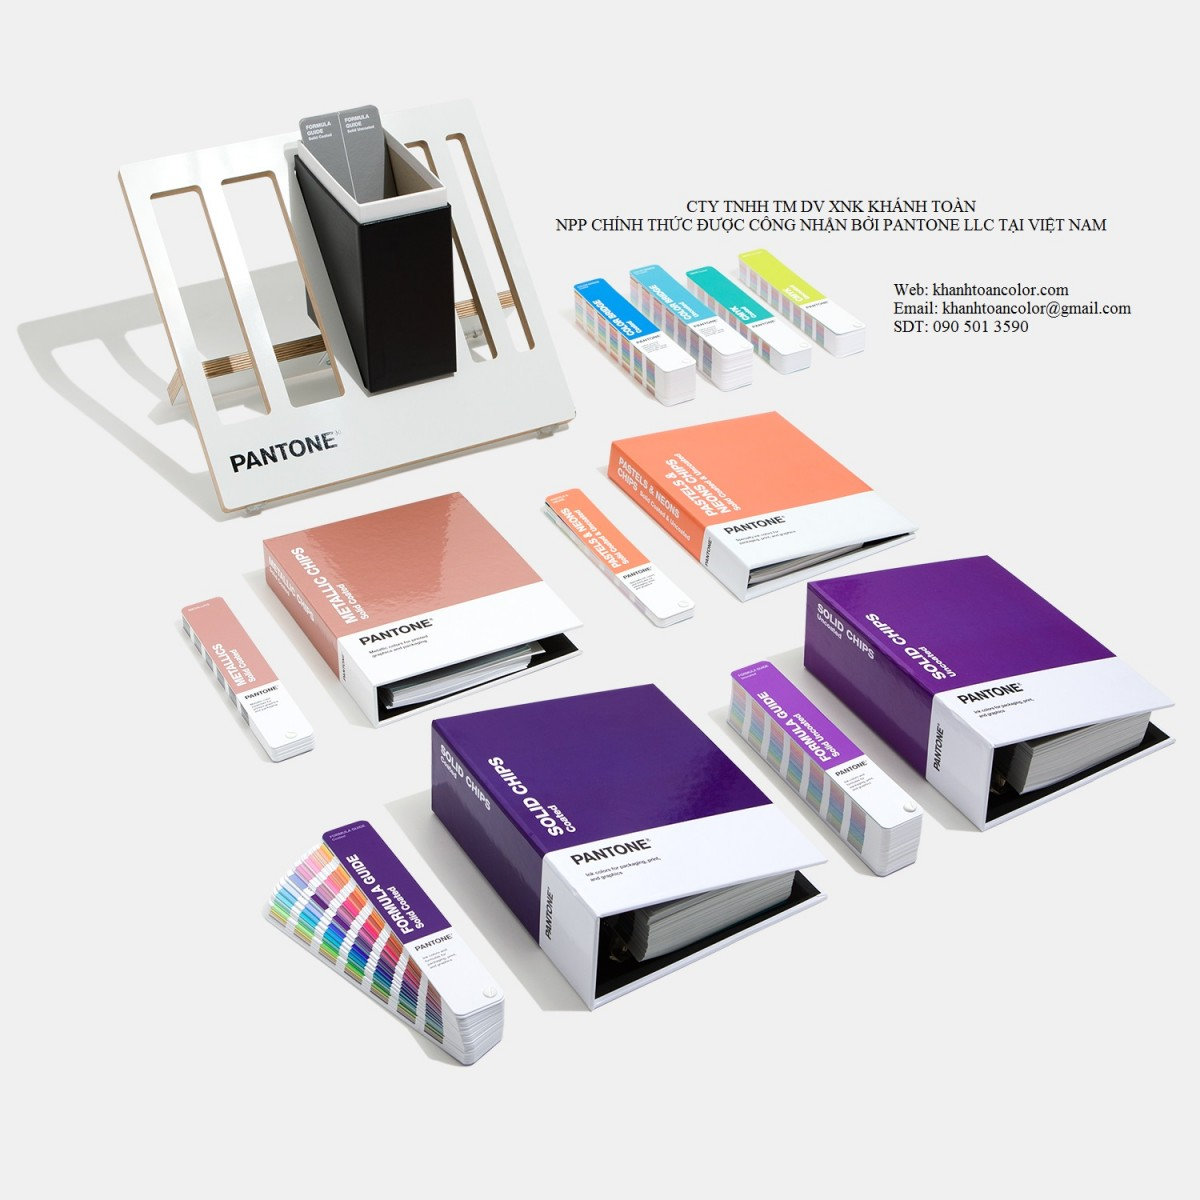 Pantone C U Reference Library GPC305A 2020 Color Guide chip book